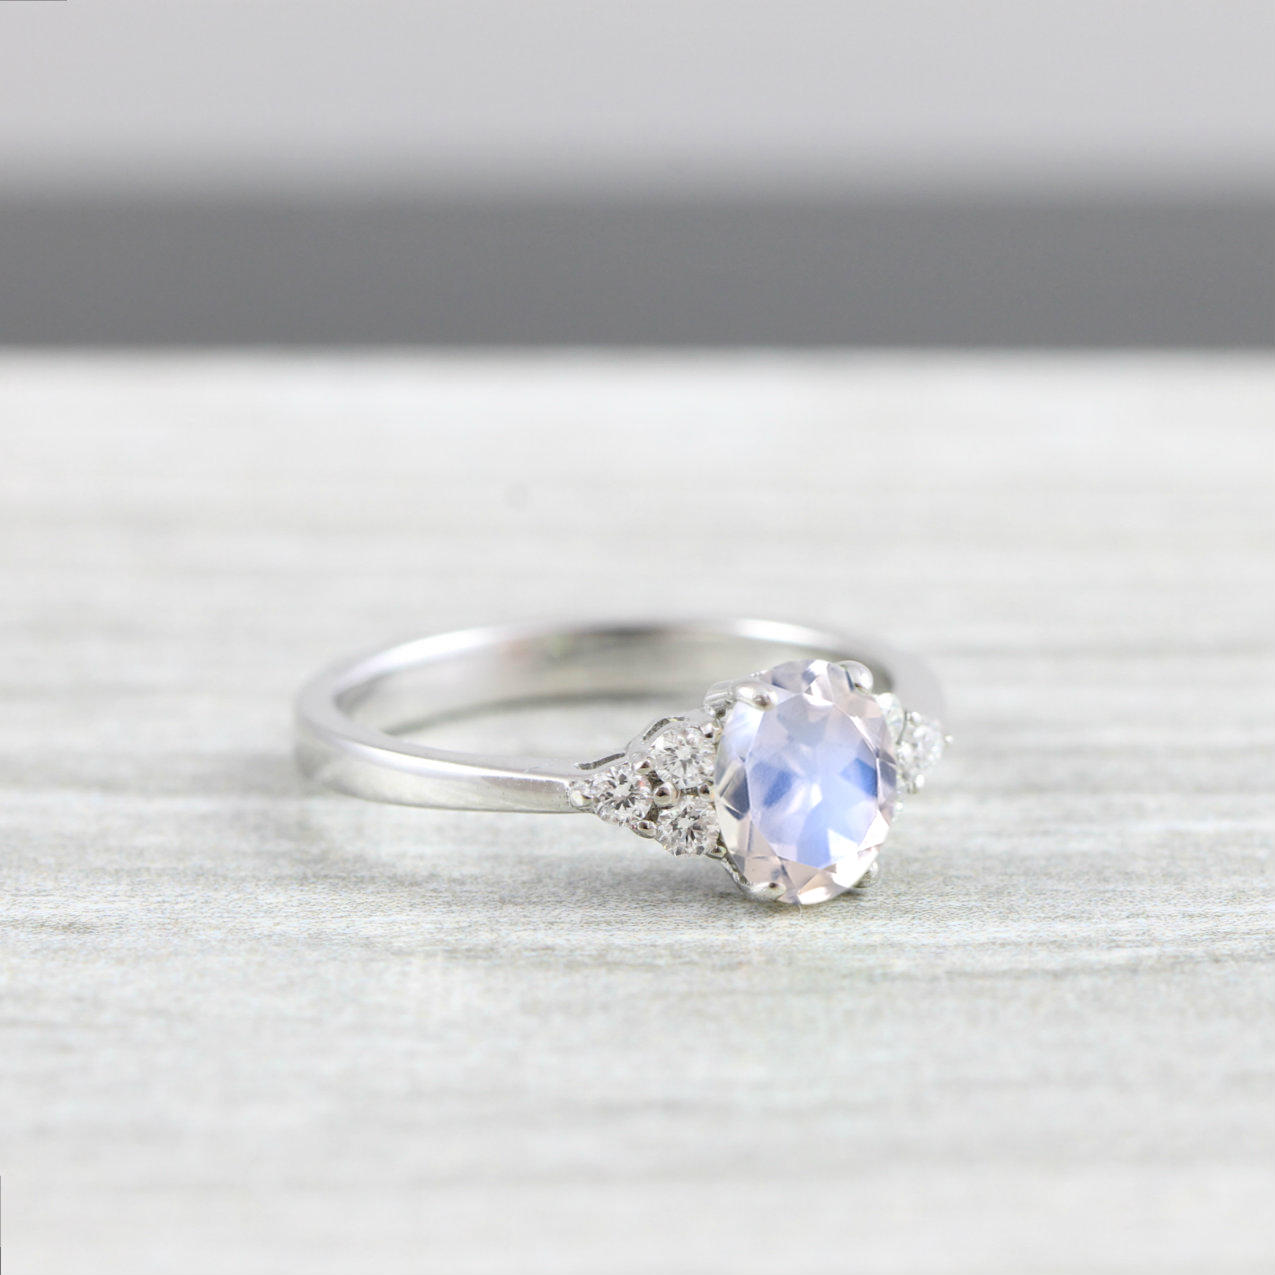 Moonstone And Diamond Oval Engagement Ring In White Rose Yellow Gold For Her Handmade Ring Uk Aardvark Jewellery